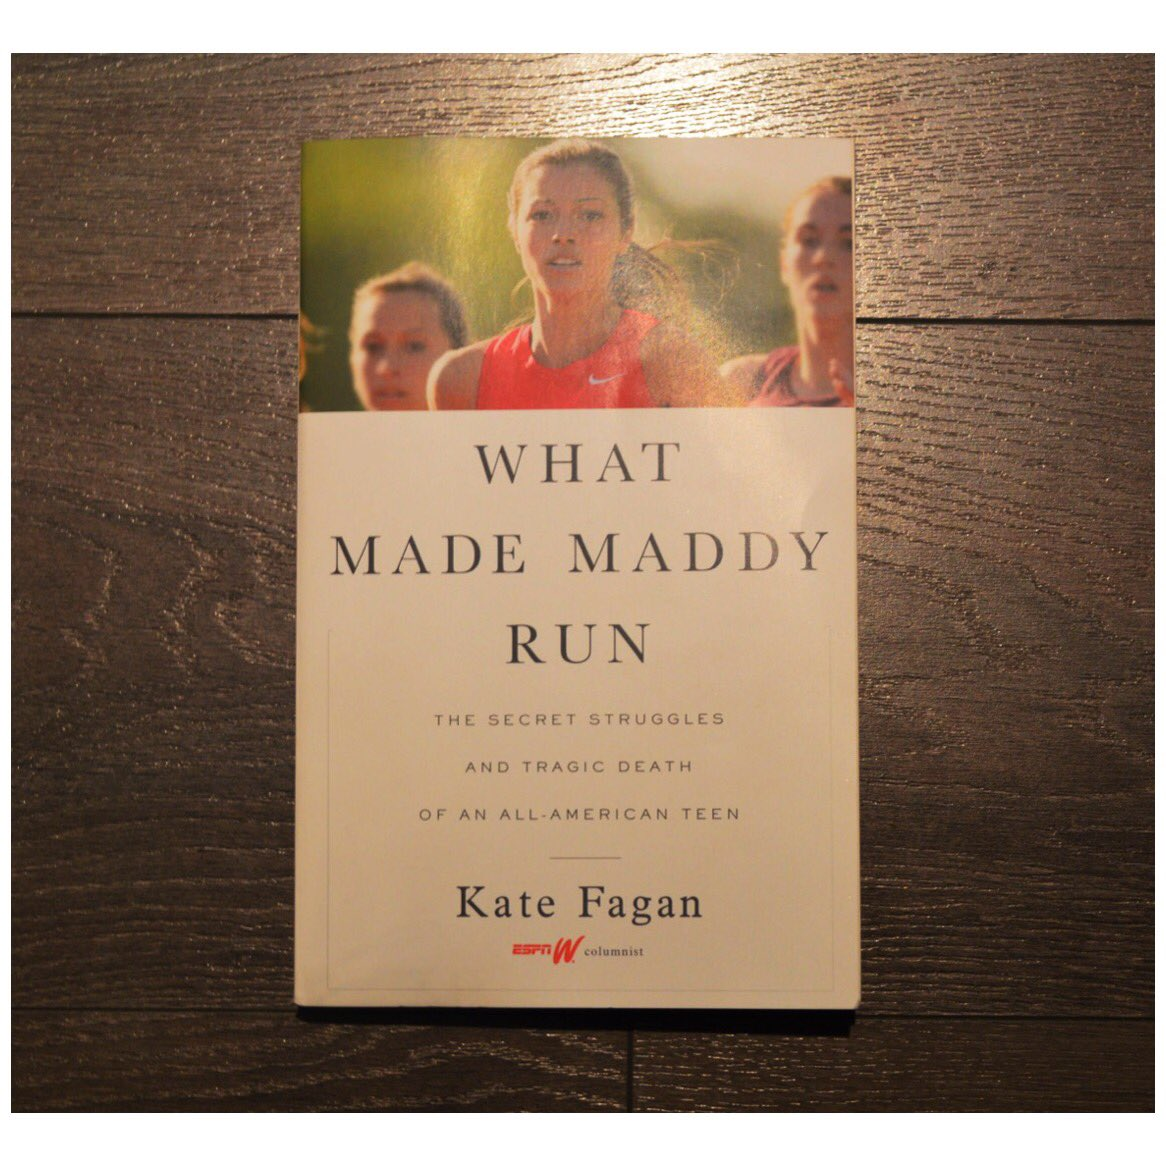 If you haven't read this yet, you should. An insightful, devastating, important story about the life we actually live vs. the life we share online. @katefagan3, thank you for writing this.